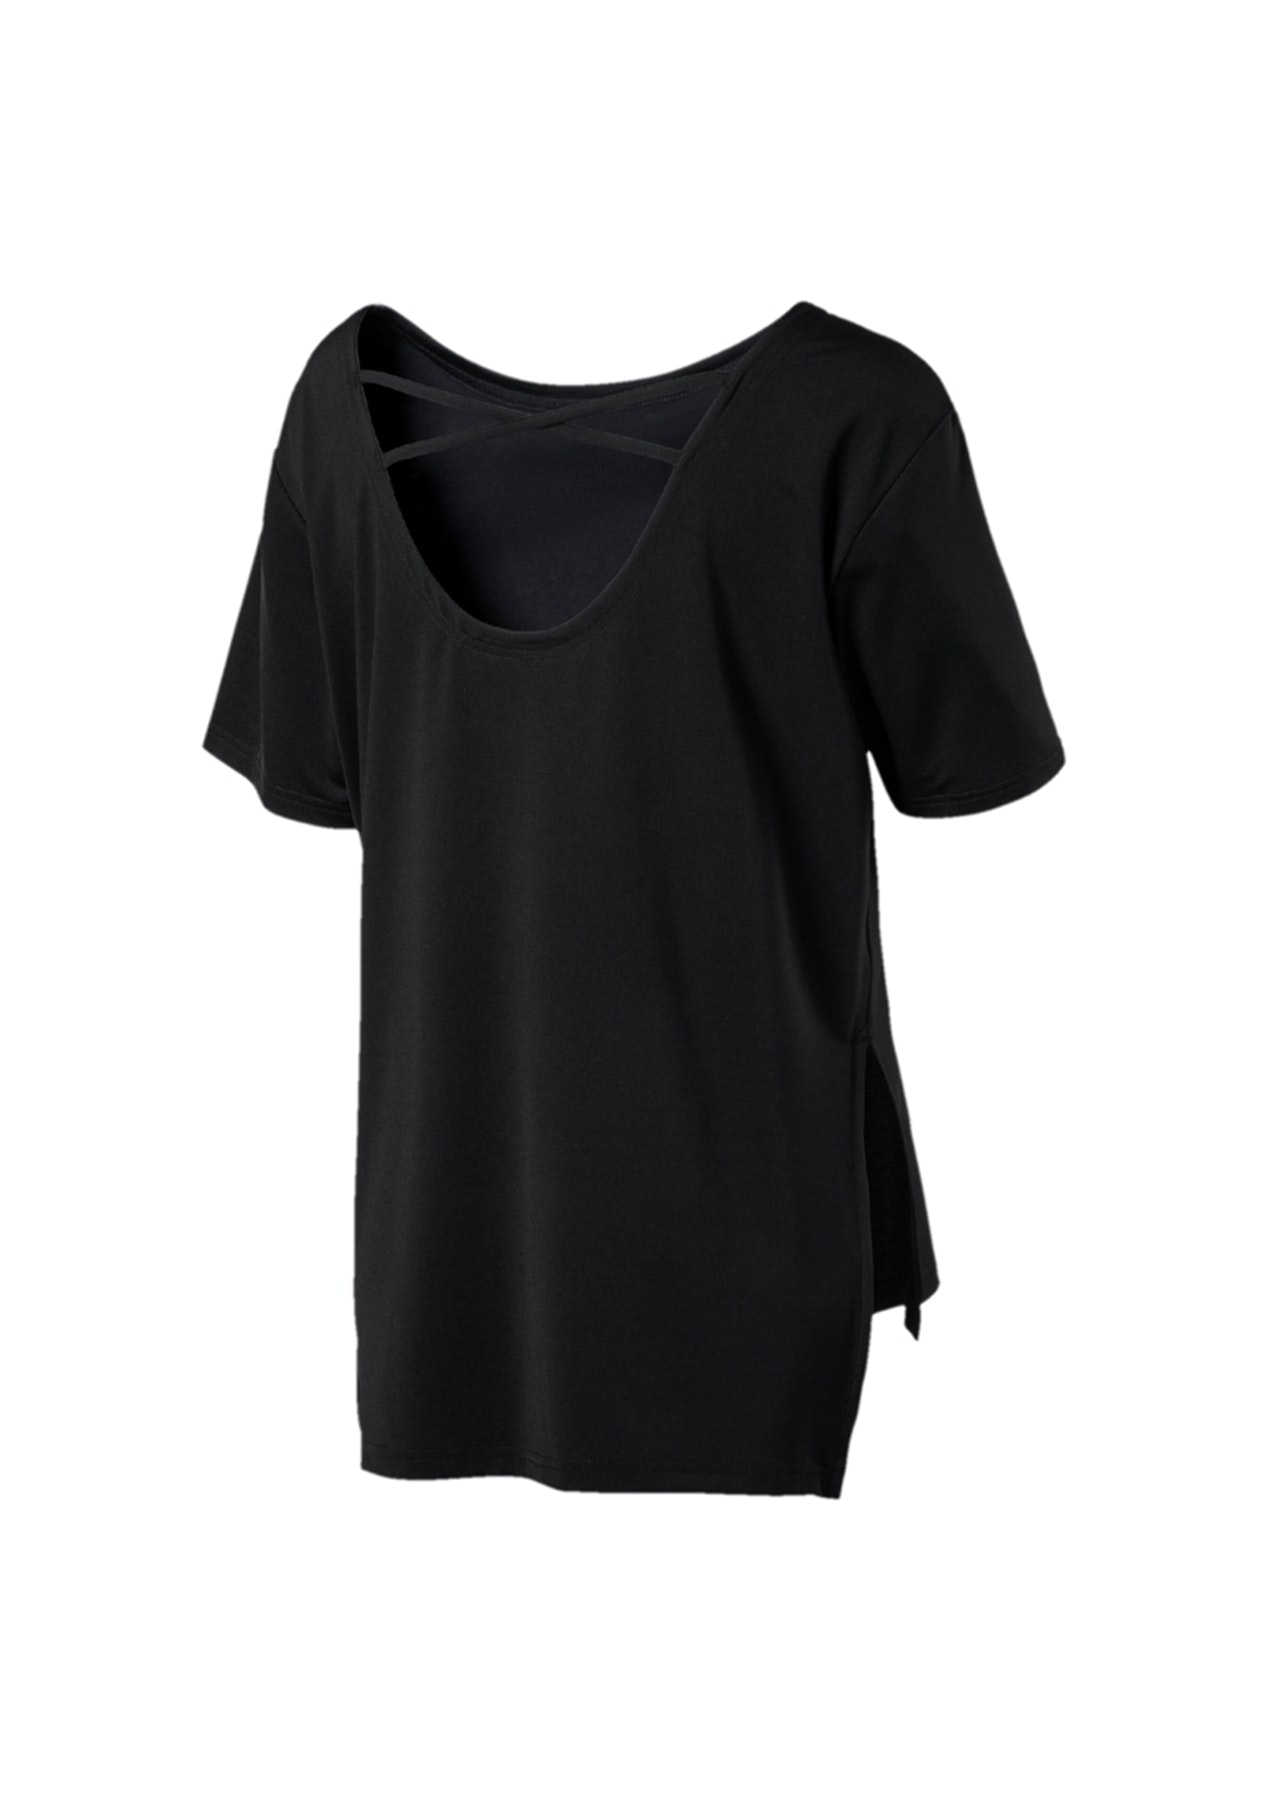 65a8c65874c Puma Womens - Transition Tee Black - Up to 63% Off PUMA Womens - Onceit